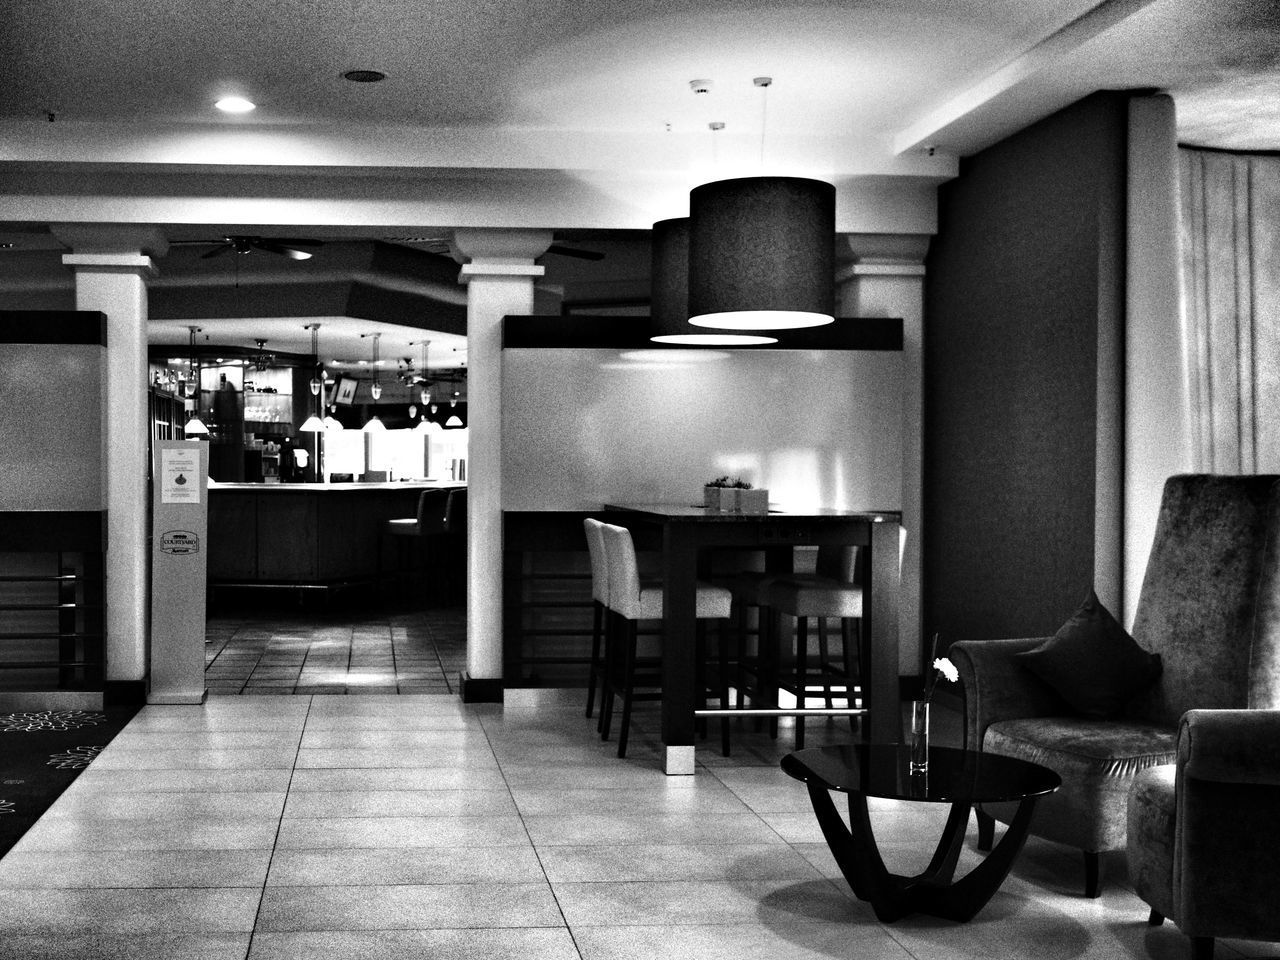 Everyone gone - MAinLoveWithLightAndShadow Alone In The Room No People Empty Space Furniture Lamps Lights Light And Shadow Shadow And Light Mono Monochrome Monochromatic Black And White Bnw Bnw_collection Bnw_captures Bnw Photography Bnw_maniac Indoors  Snapshot Beauty In Silence Silence Silent Moment How I See The World - 01.02.2017 - #courtyard #marriott #hannover